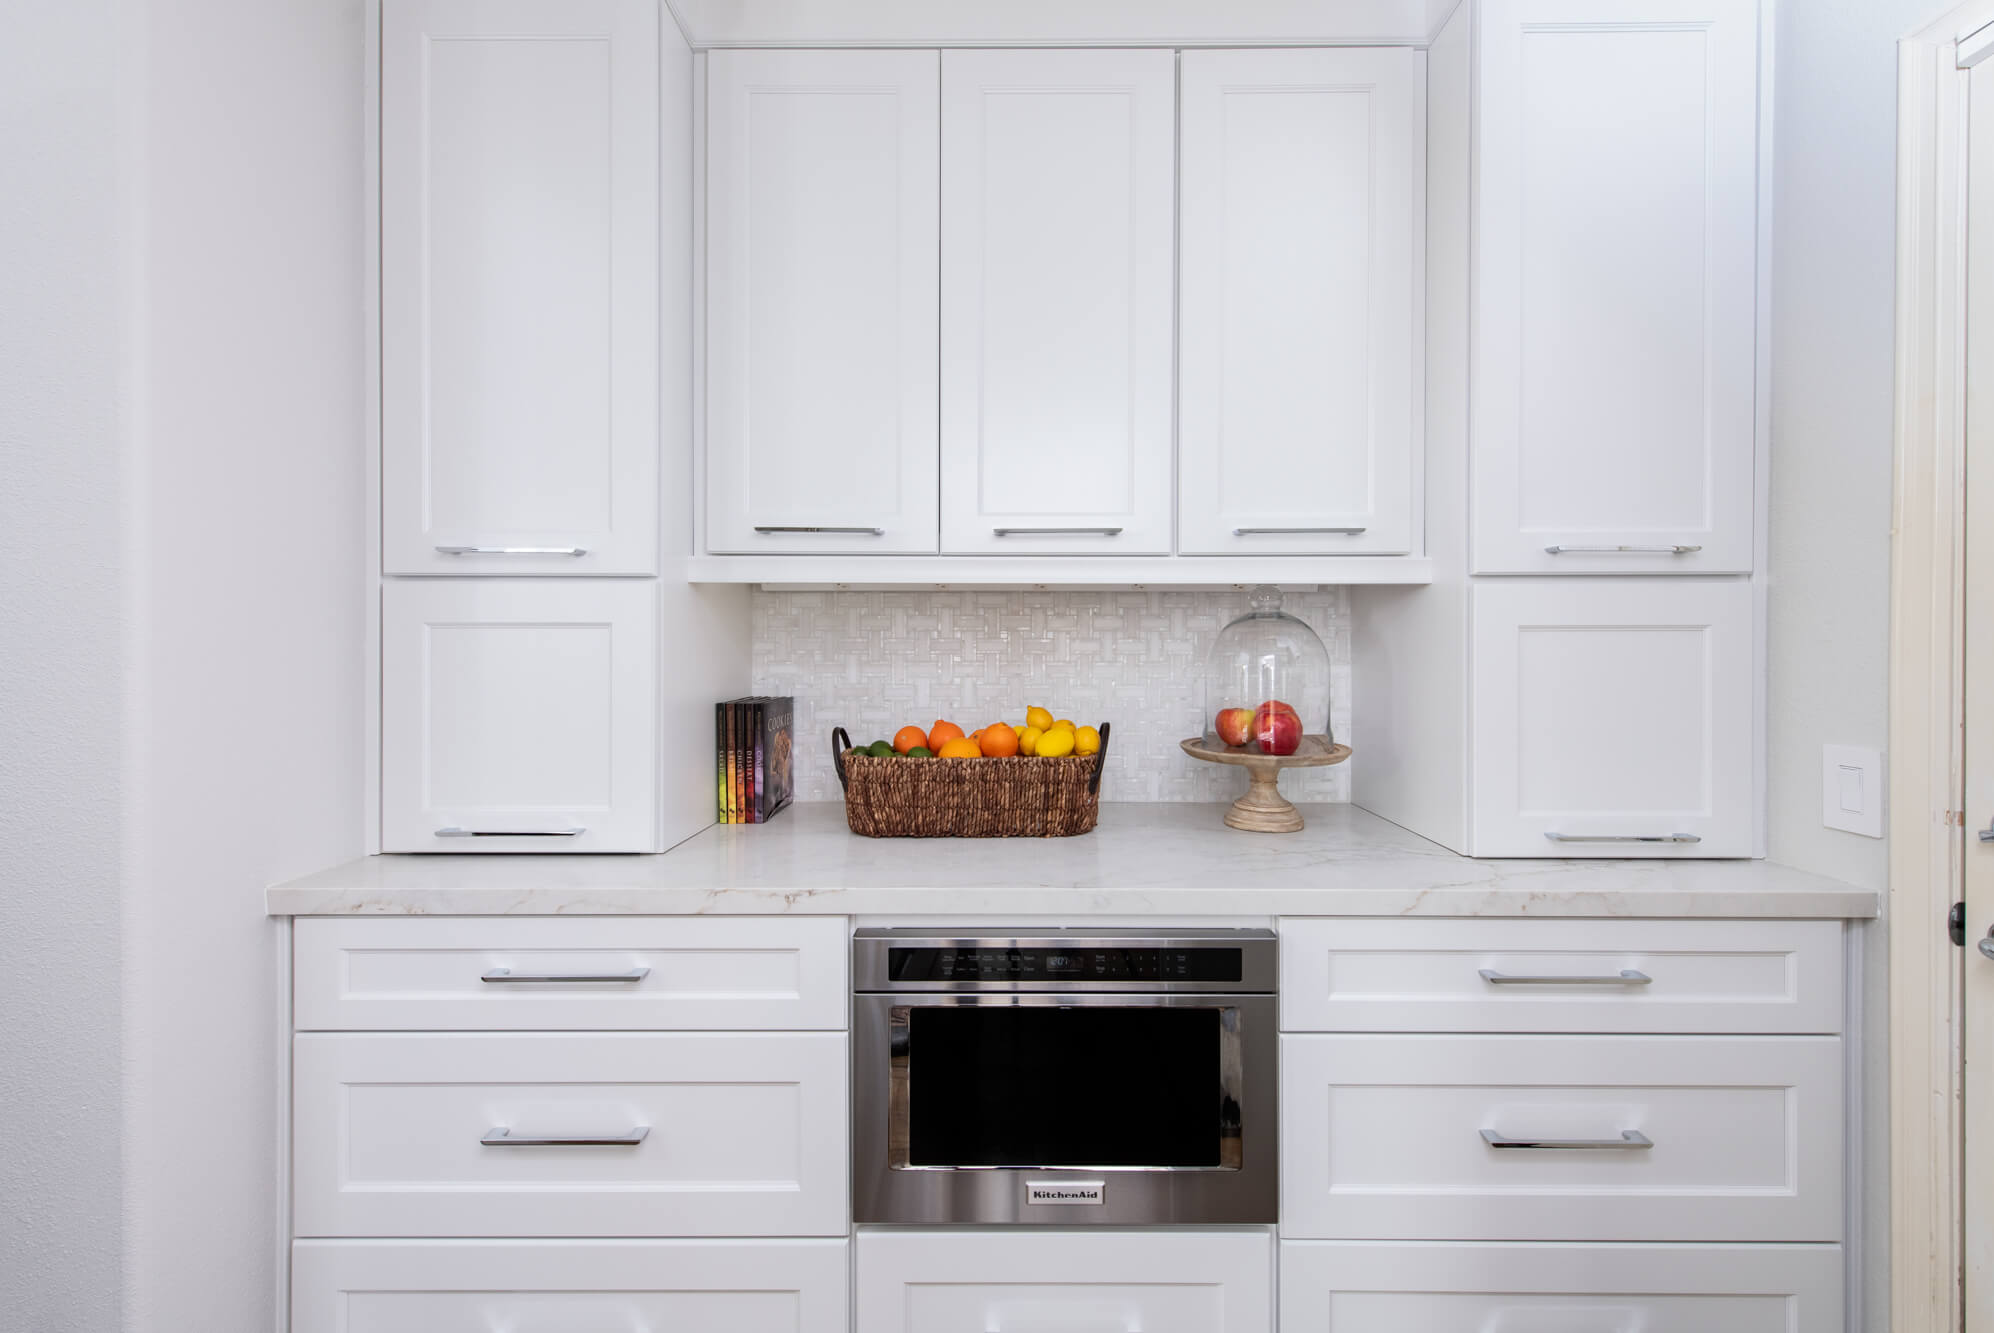 butlers-pantry-with-cabinetry-and-marble-tile